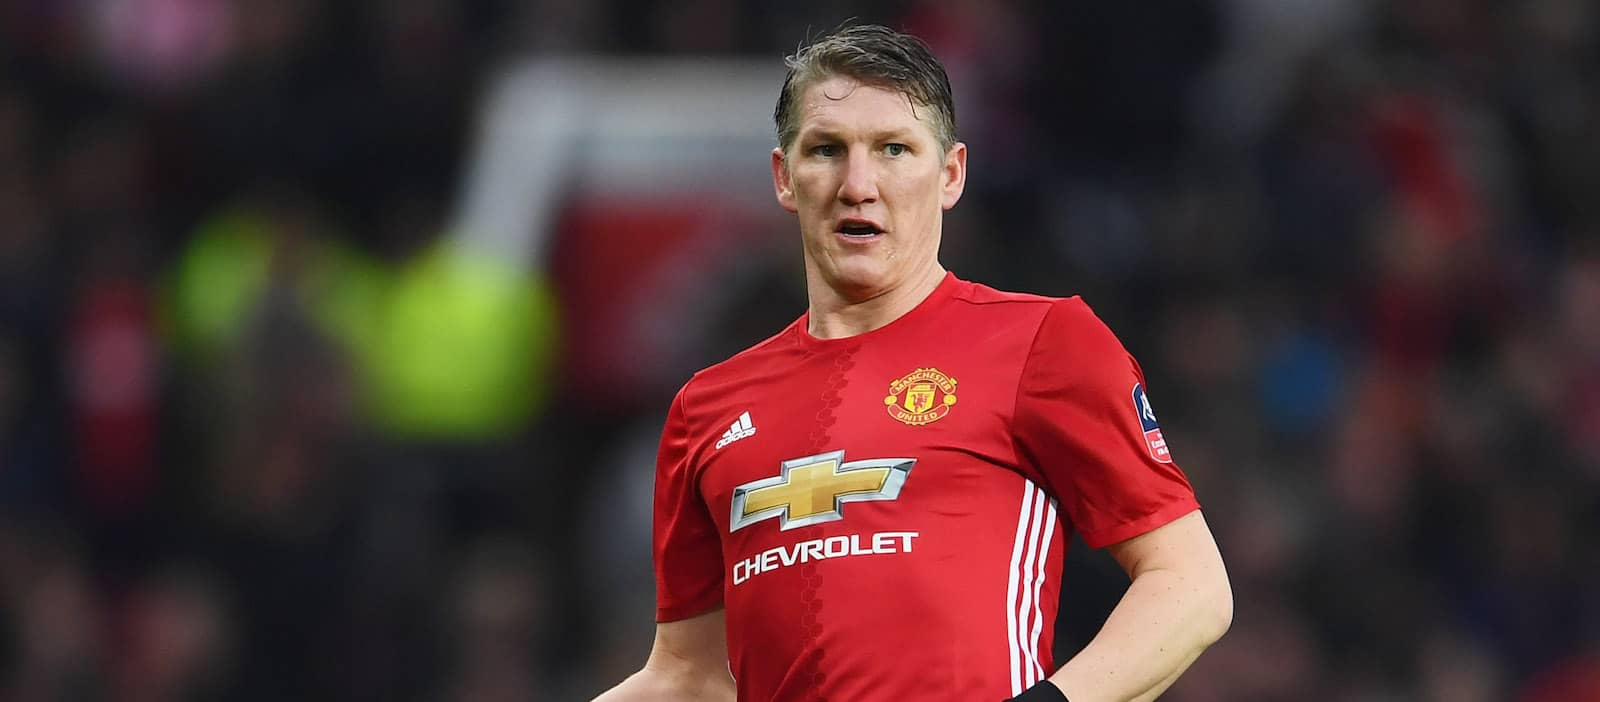 Bastian Schweinsteiger opens up about his struggles at Manchester United